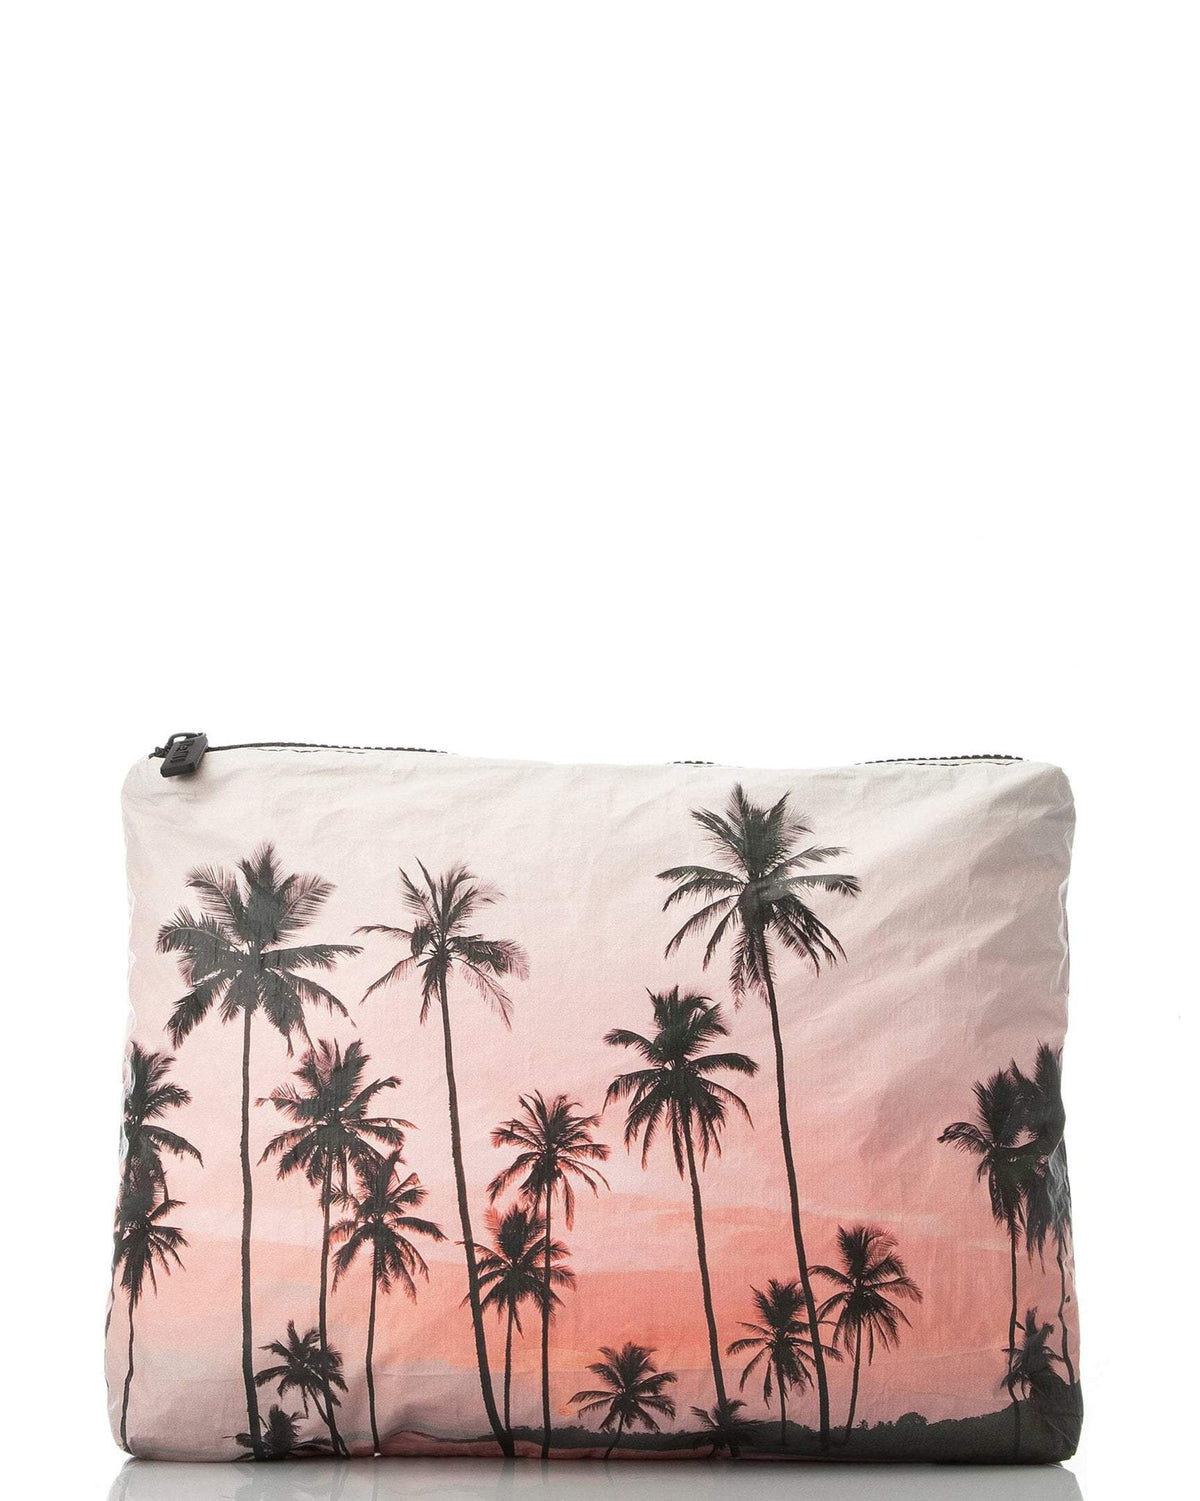 Aloha Collection Mid Tangalle Ceylon Sliders x Samudra x Aloha pouch